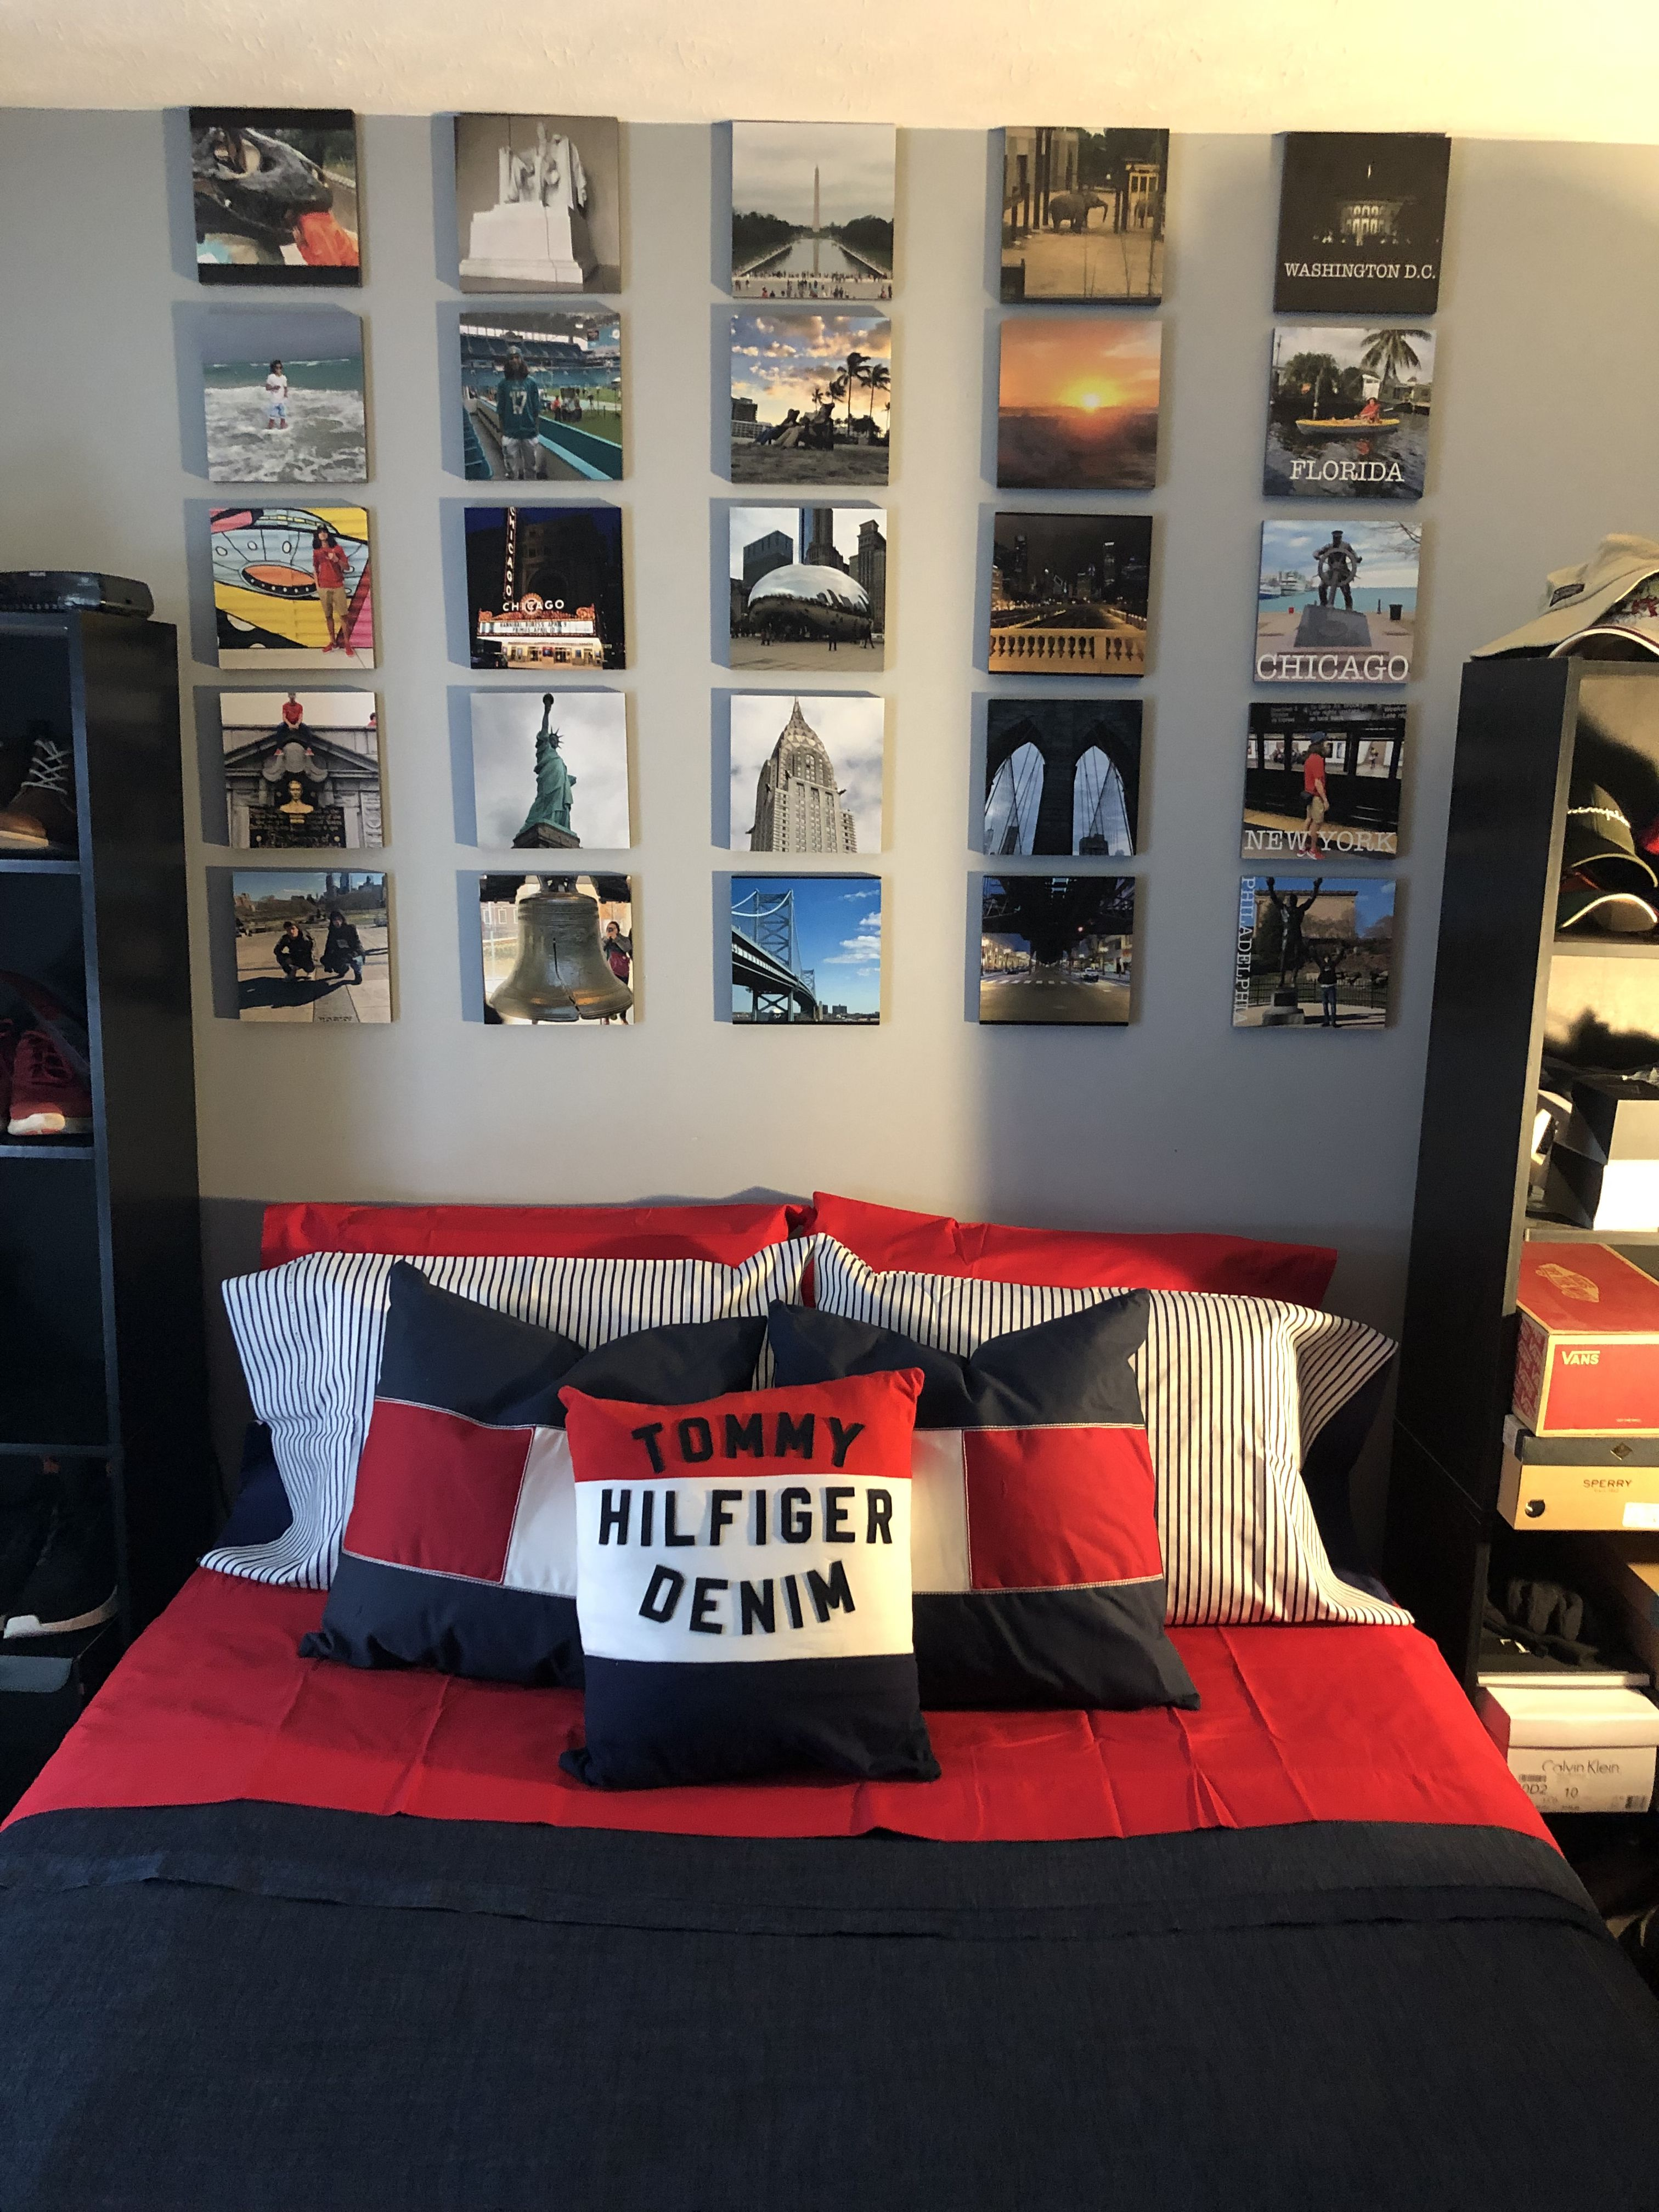 Pin by Upinthabronx on Tommy Hilfiger Bedroom (With images